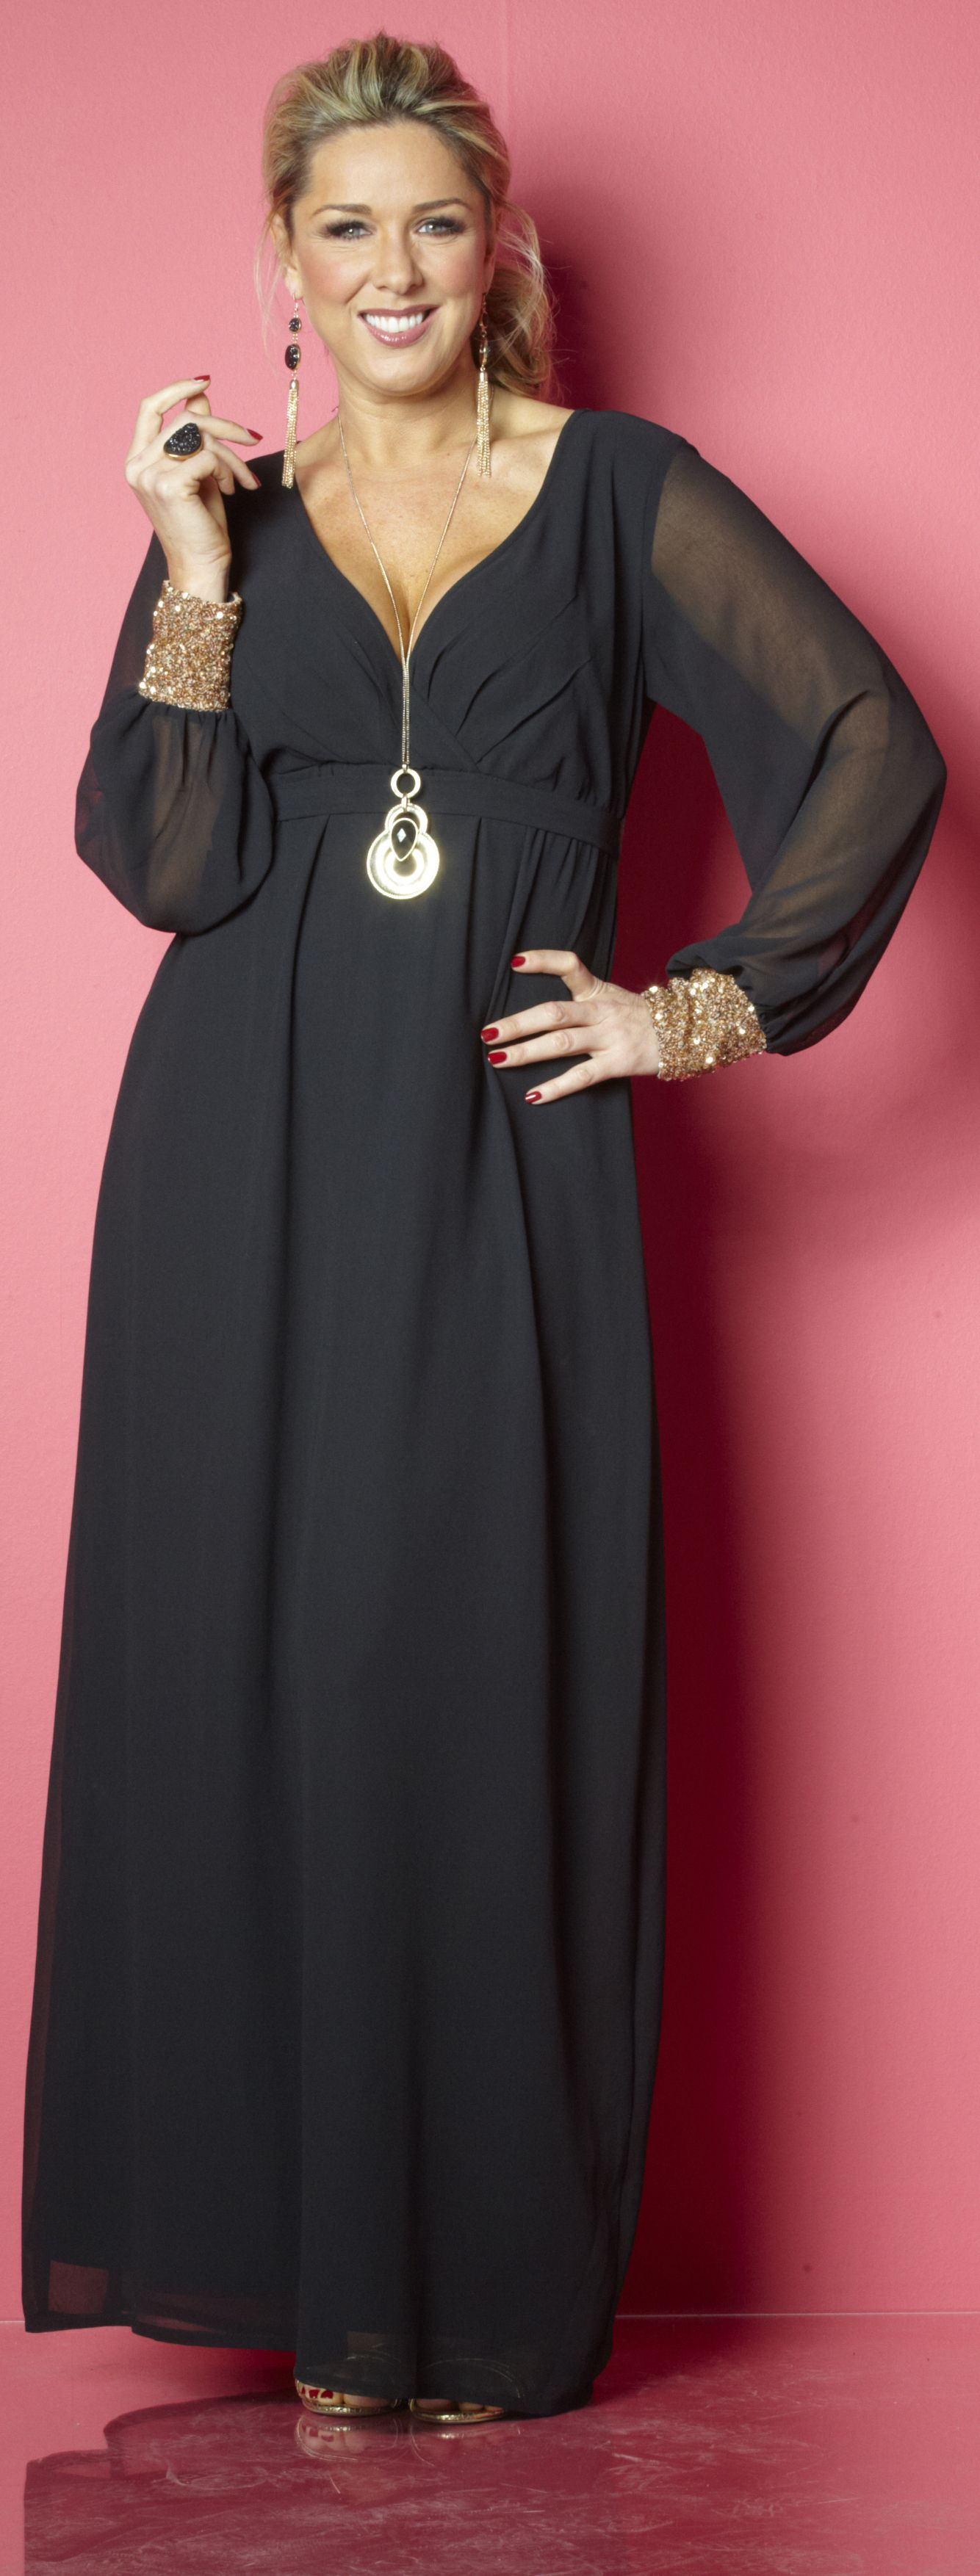 Sexy Plus Size Cruise Wear at http://boomerinas.com/2011 ...